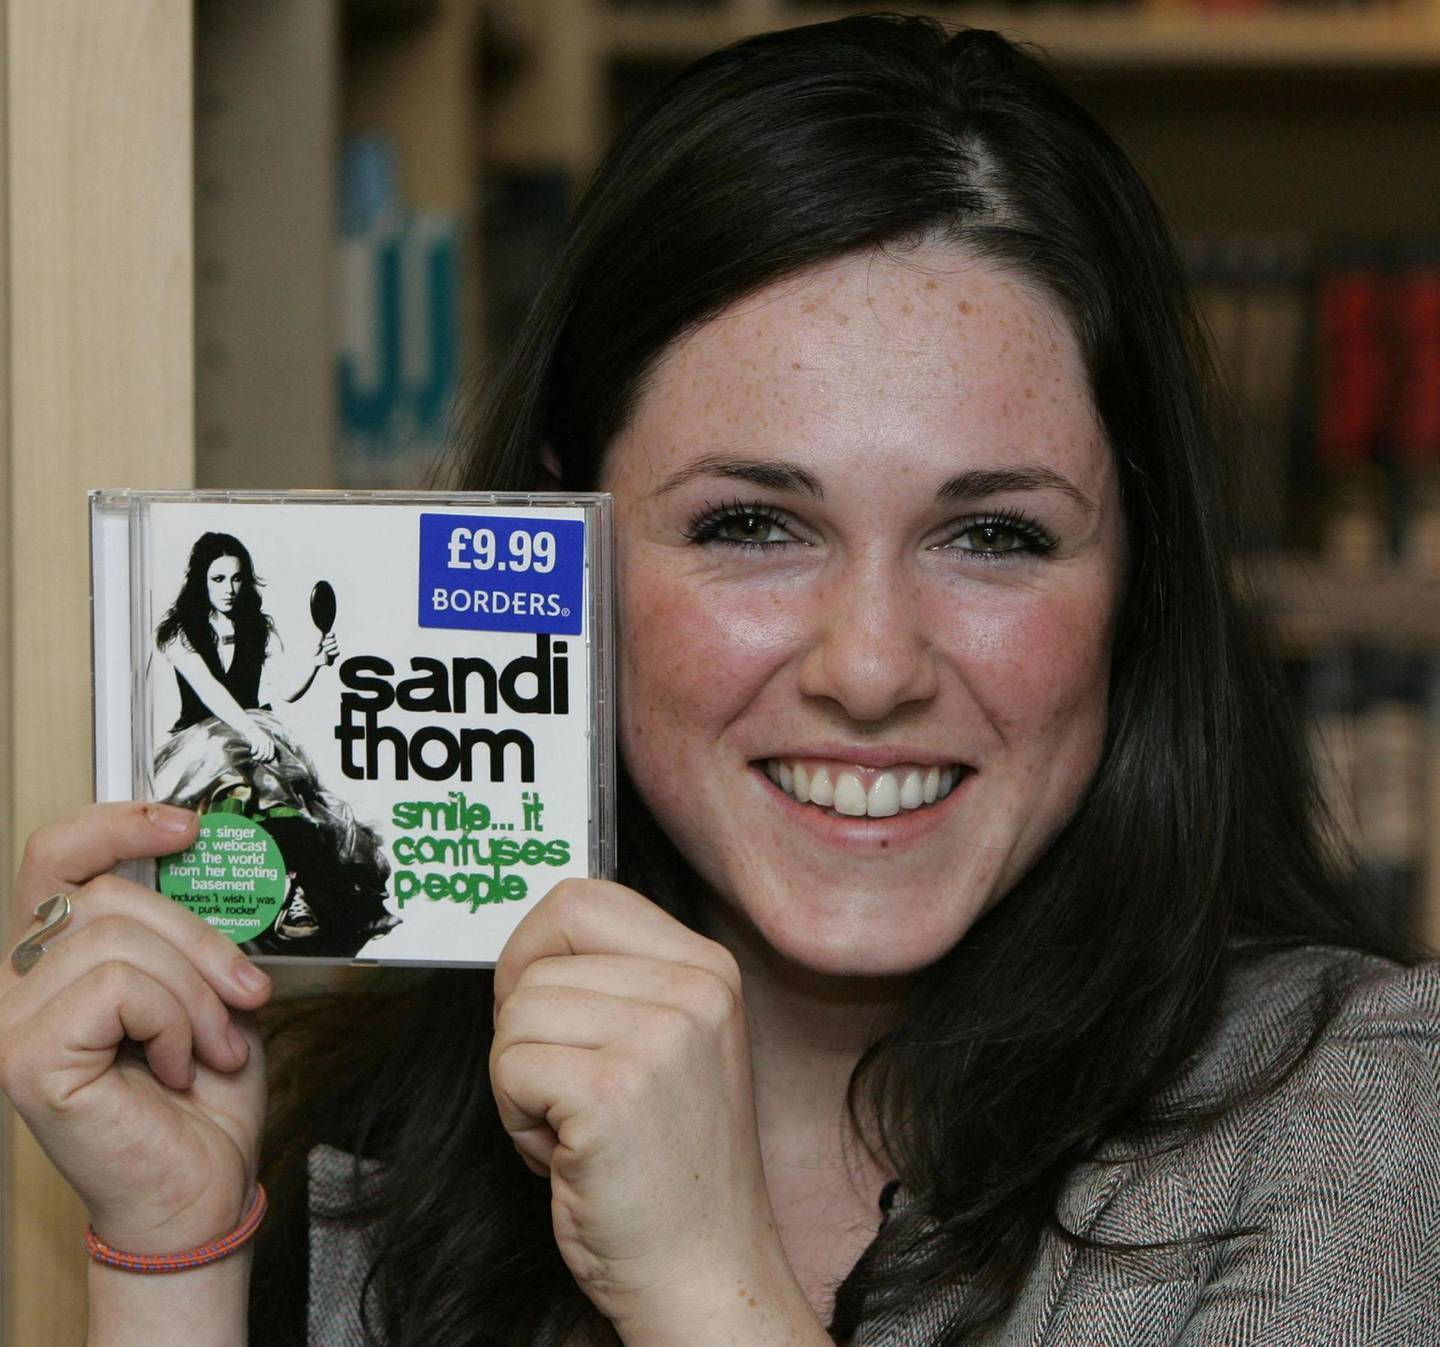 Music Artist Sandi Thom with her new album at Borders music store in Glasgow, where she performed her new single which is the new UK number.   (Photo by Andrew Milligan - PA Images/PA Images via Getty Images)